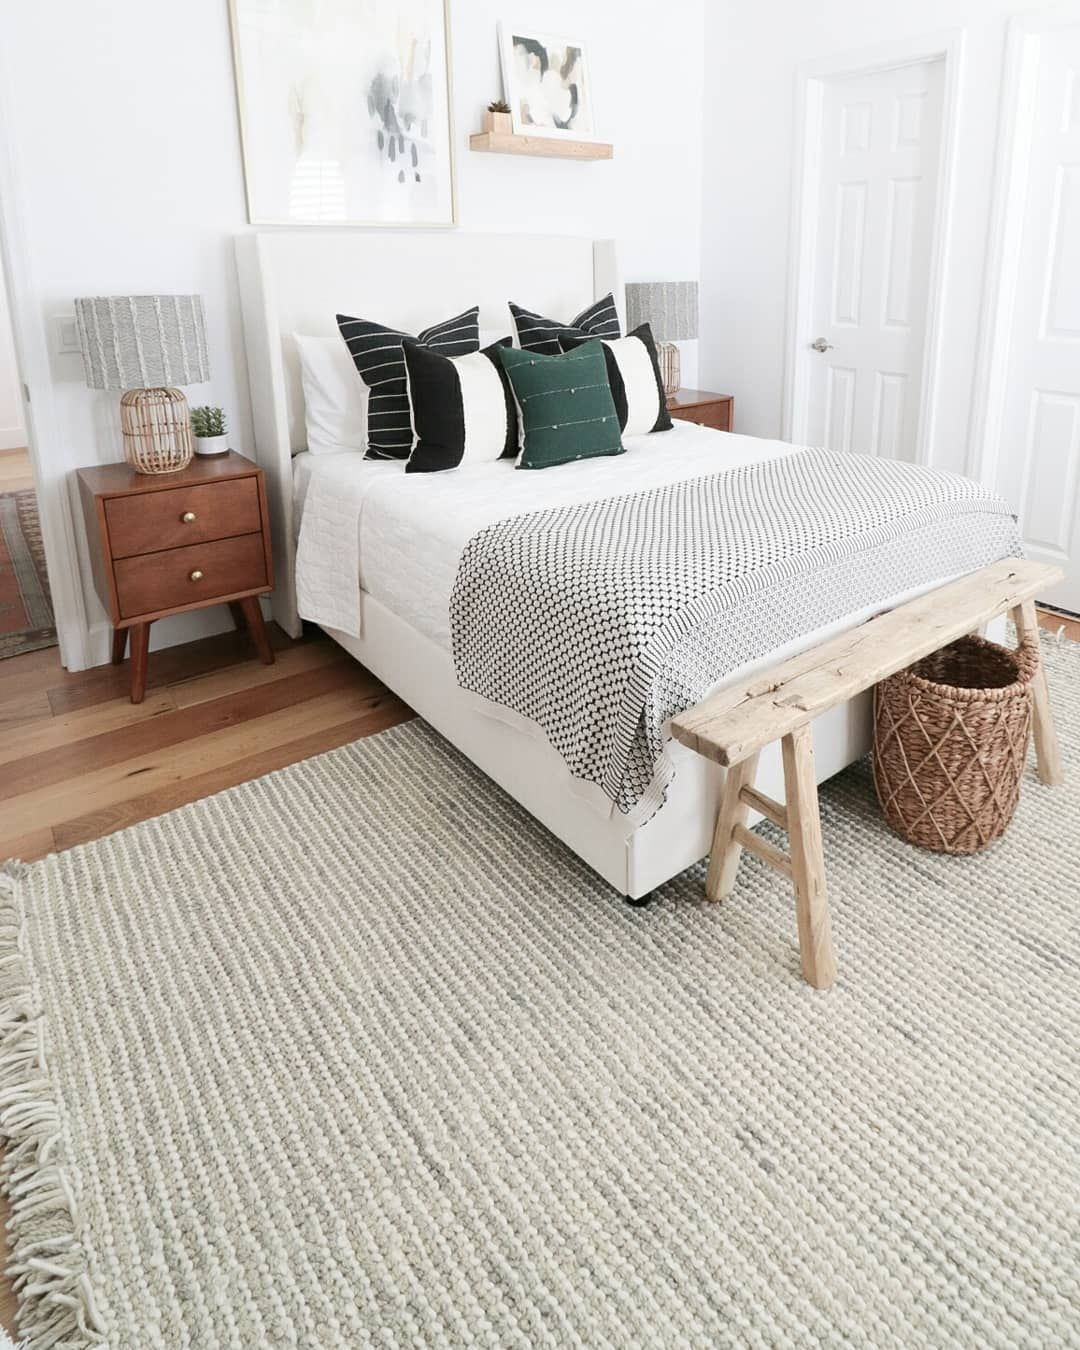 6 641 Likes 181 Comments Jordan House Becomes Home On Instagram Well I Must Say I A Modern Farmhouse Dining Room Guest Room Decor Farmhouse Dining Room